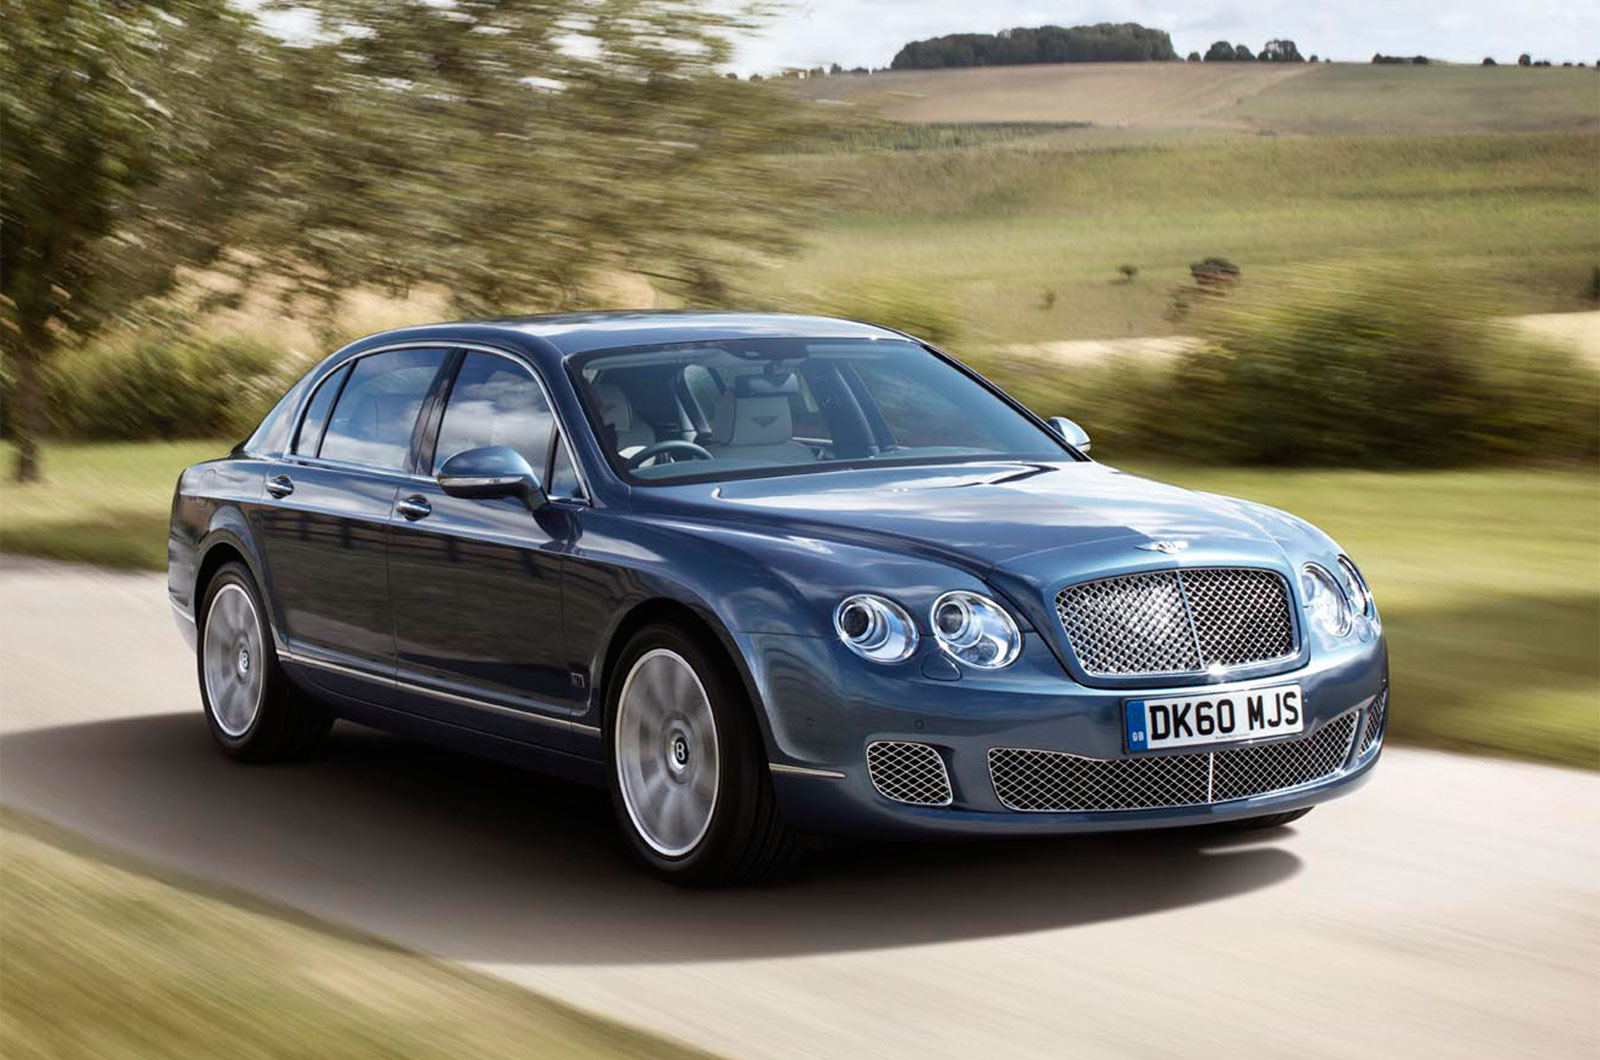 flying Spur – Car Wallpapers in HD For The Iphone ,Android,Desktop,11